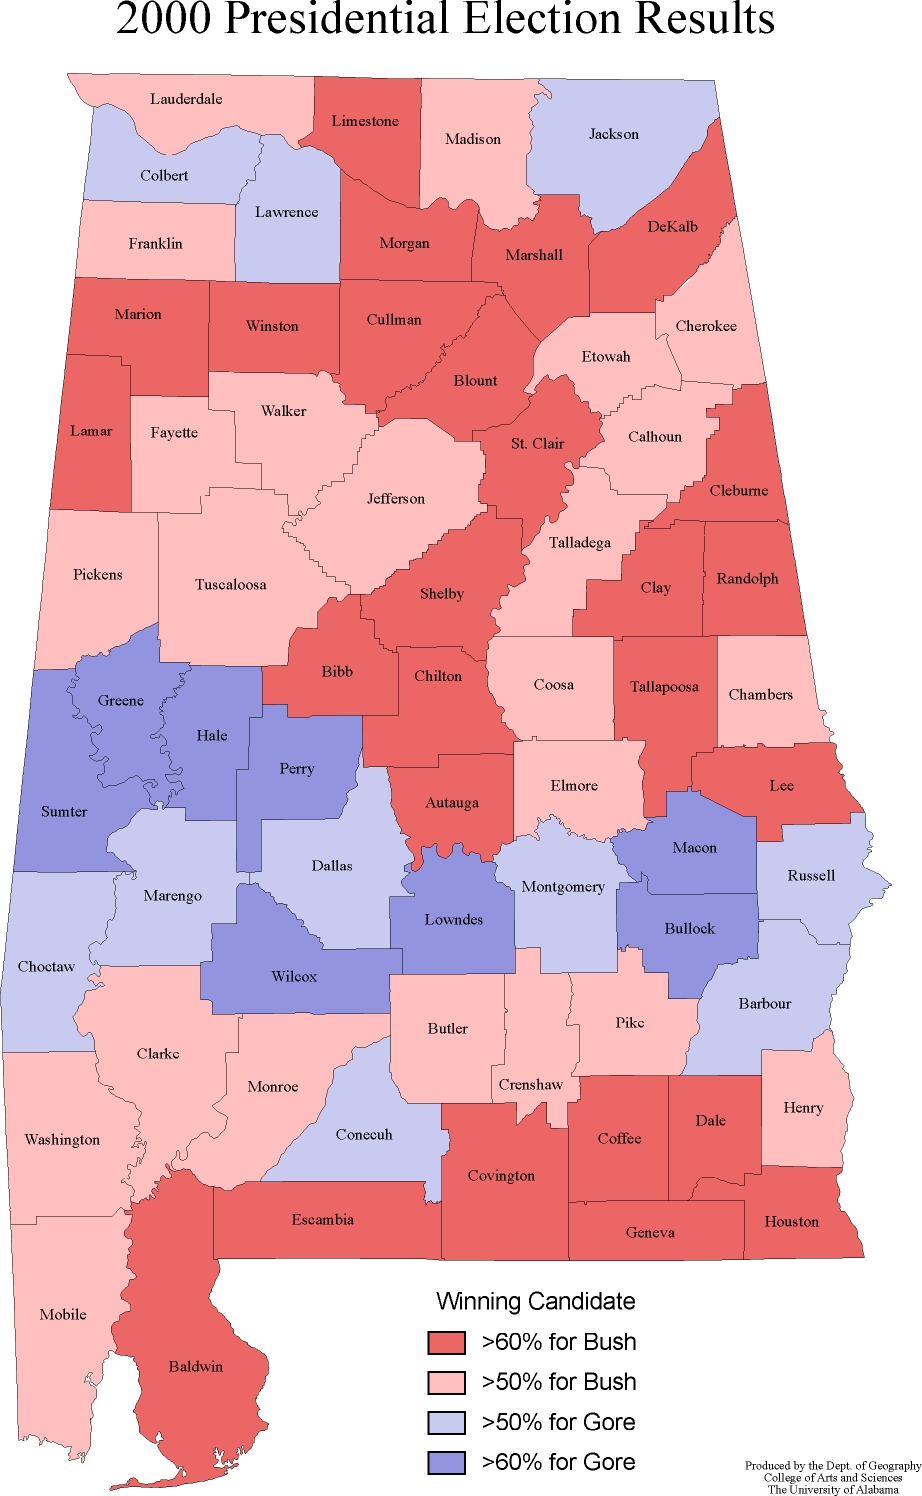 Alabama Maps - Politics